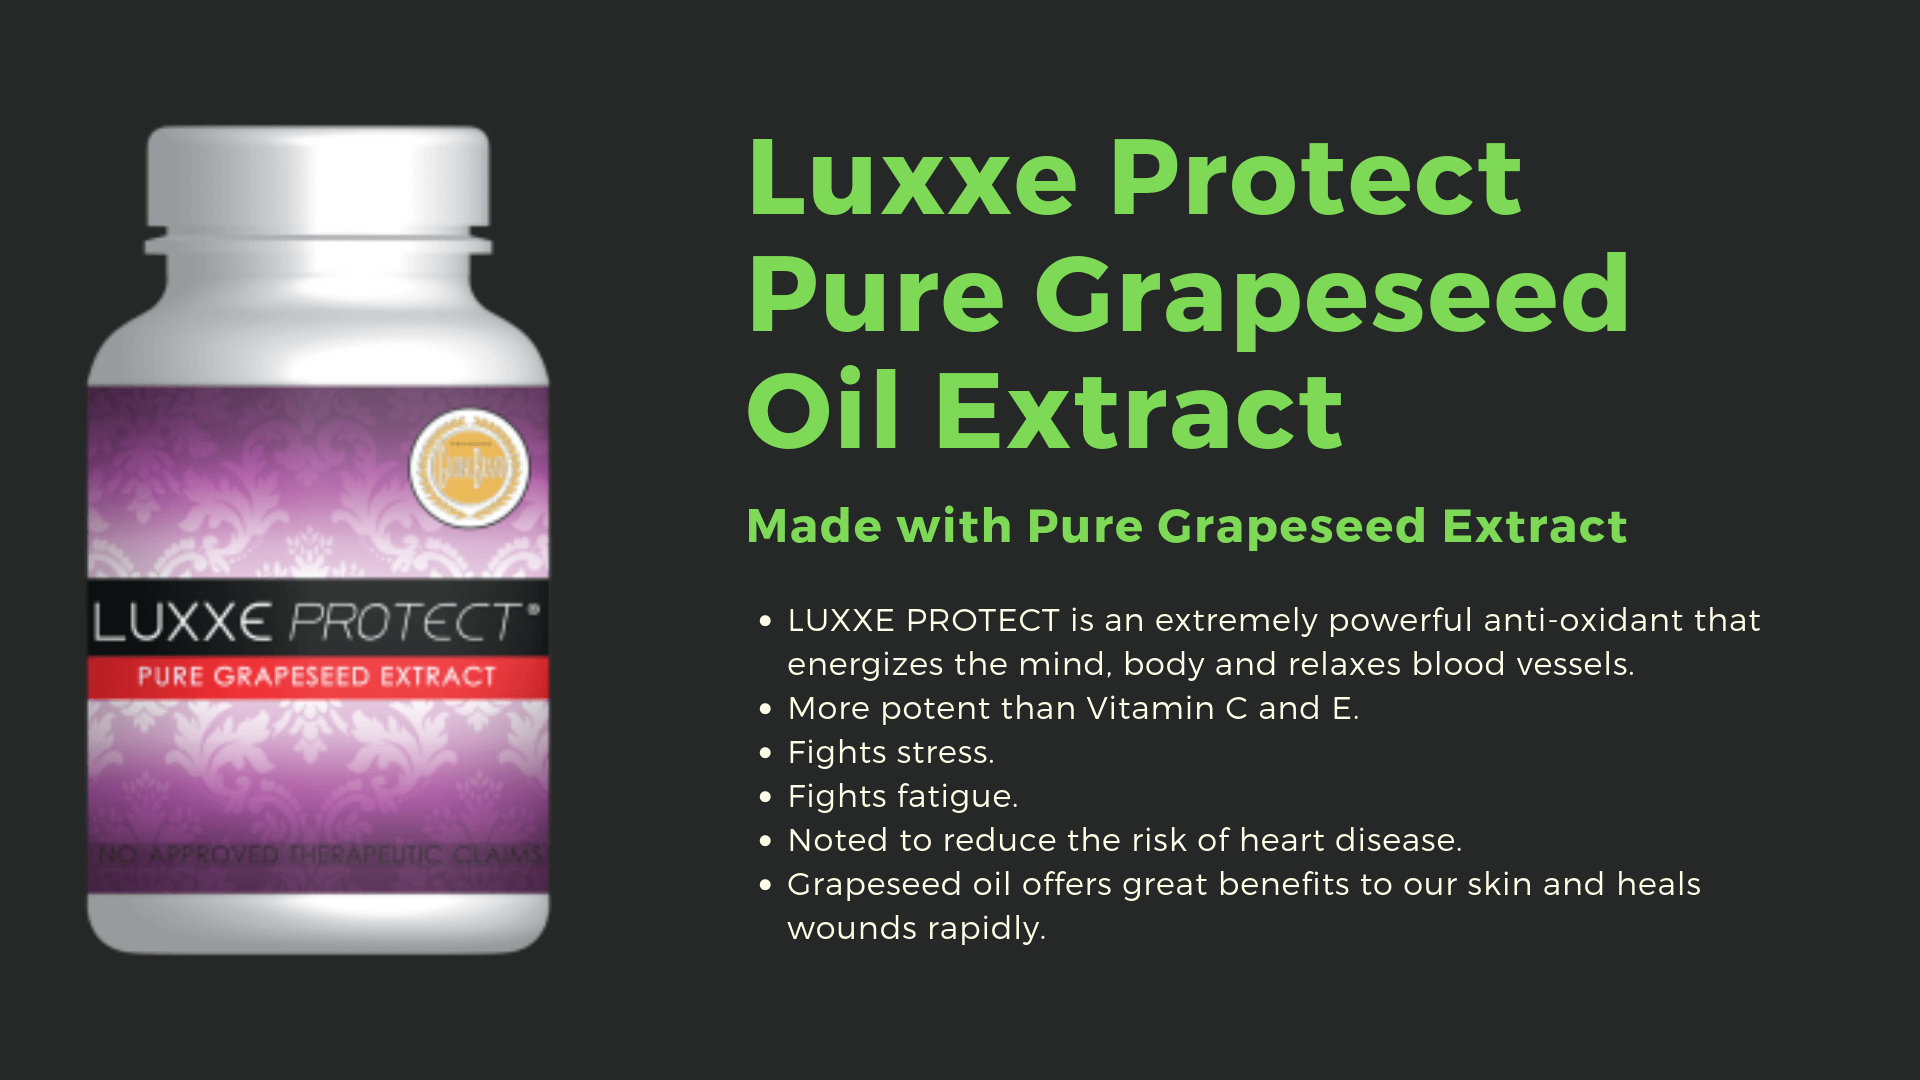 luxxe protect pure grapeseed oil extract image details